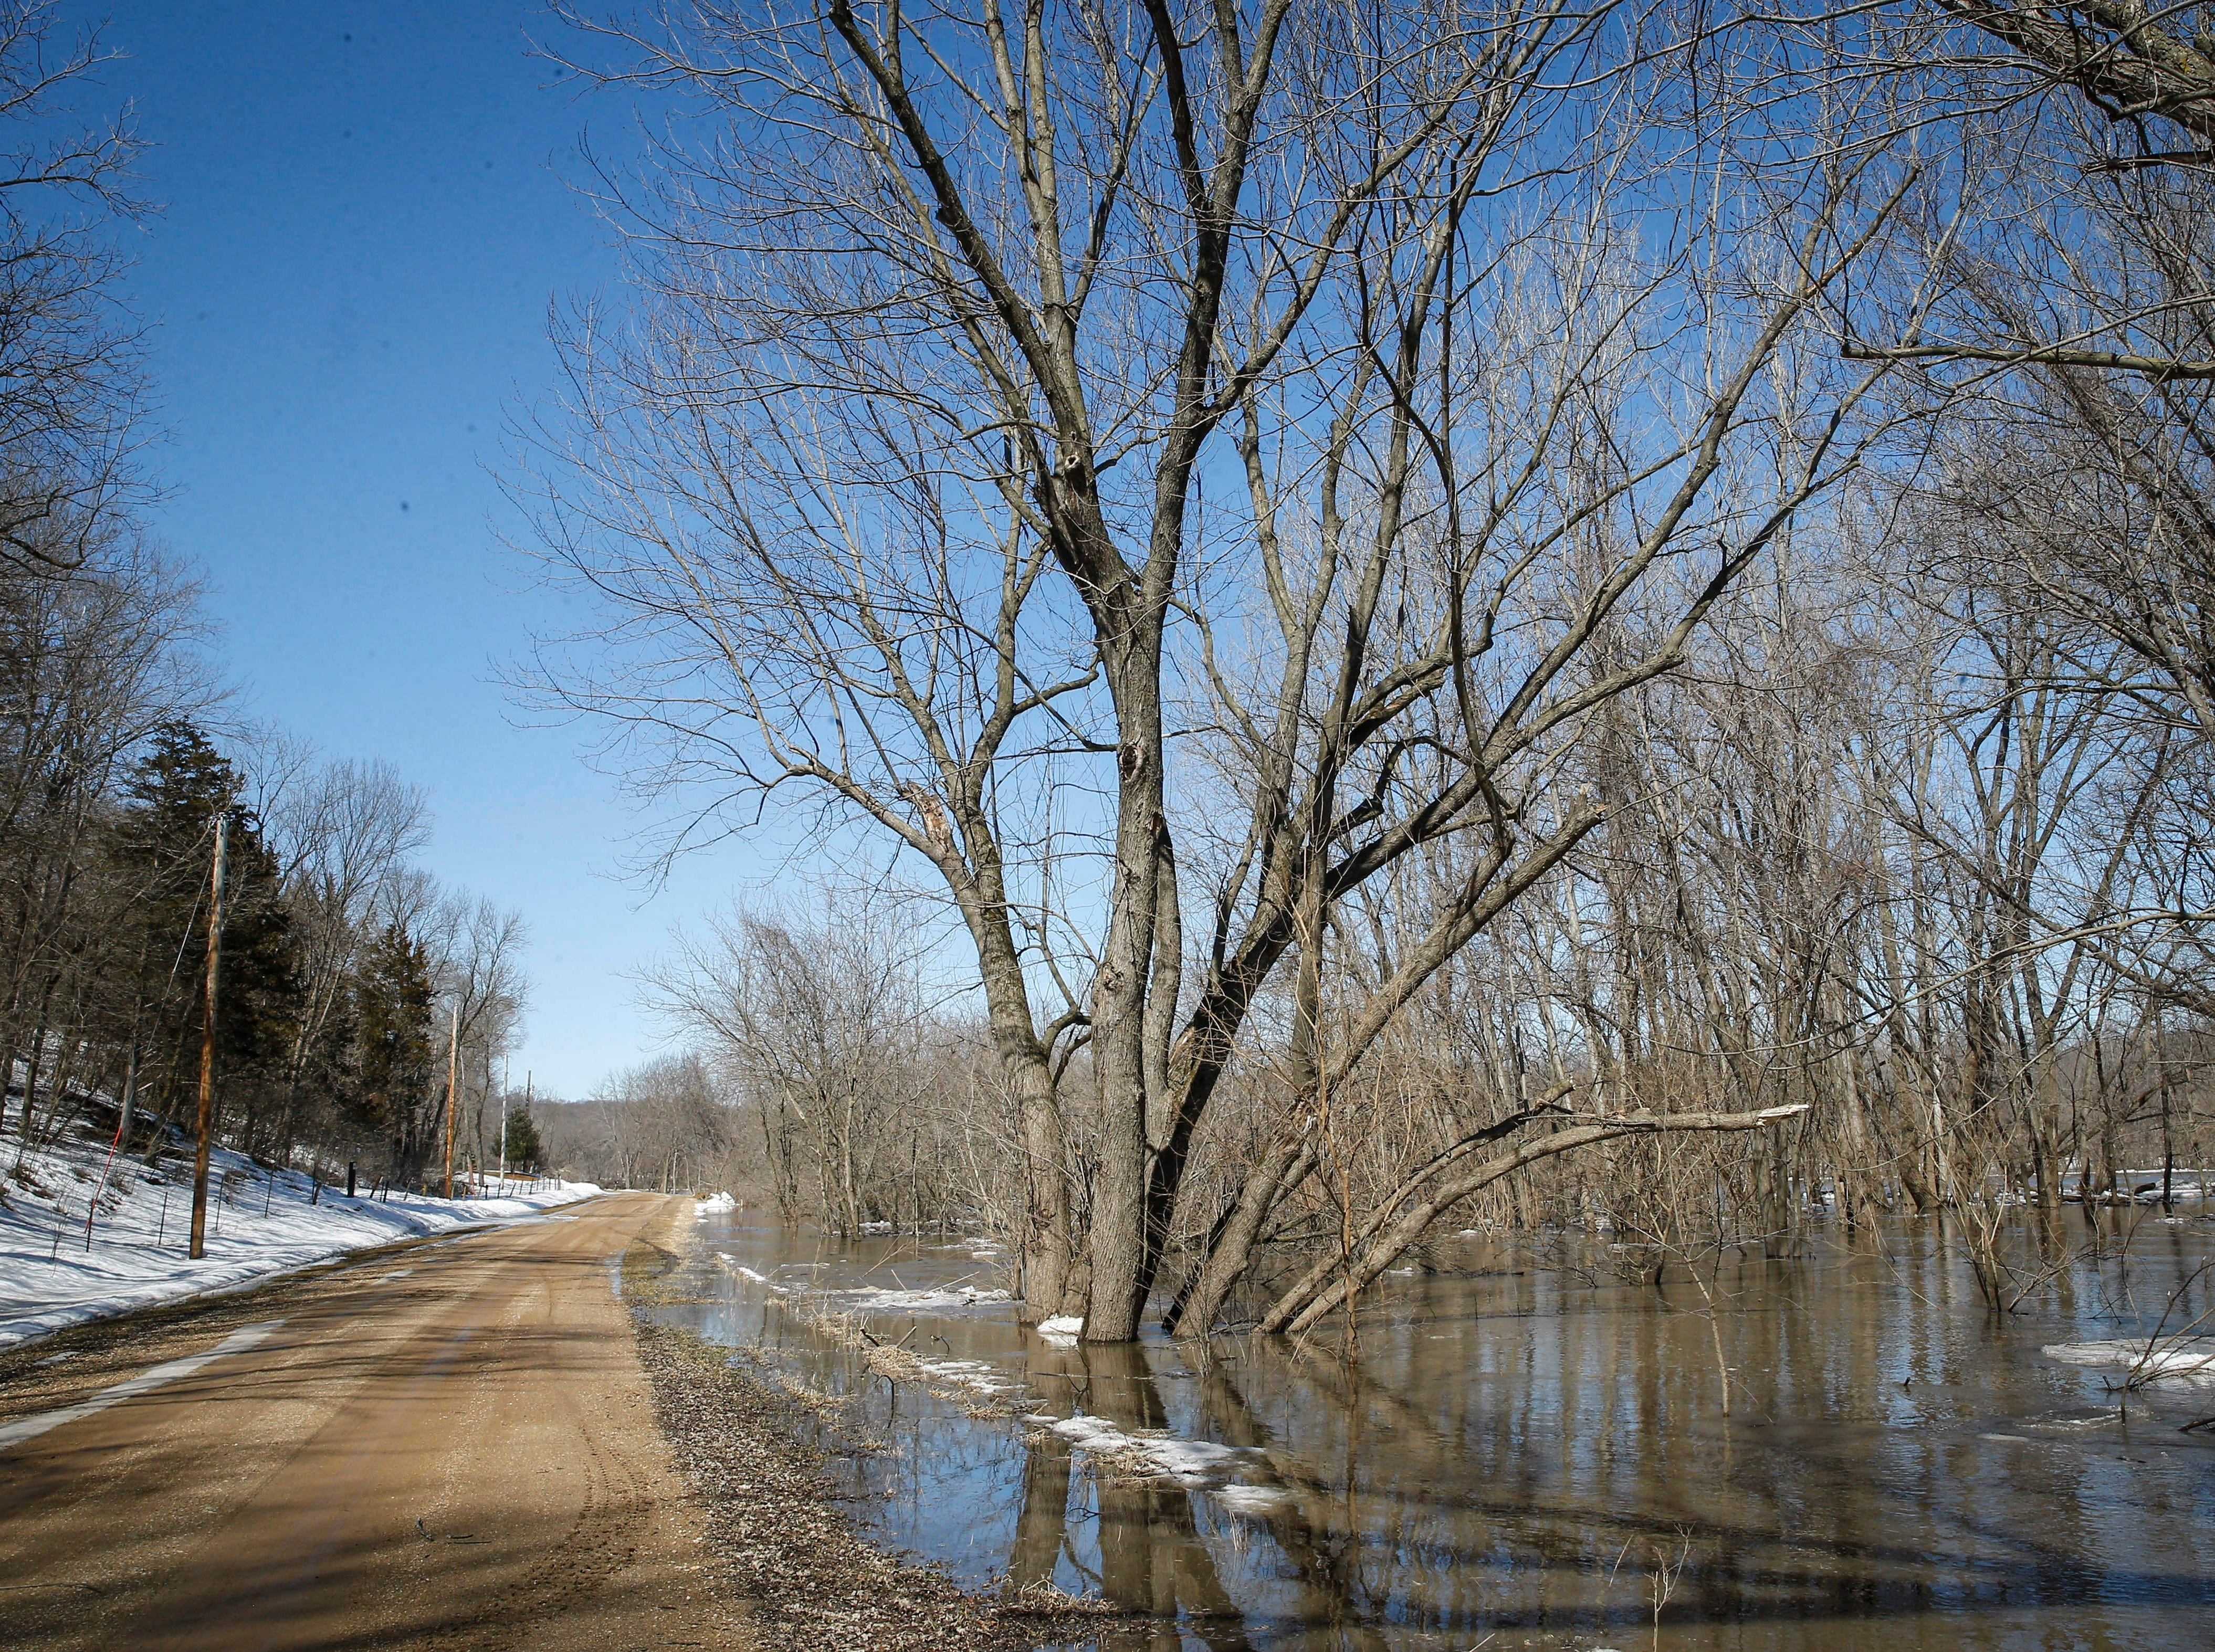 Water from the swollen Des Moines River threatens to cross over River Road near Stratford in Hamilton County  on Friday, March 15, 2019.